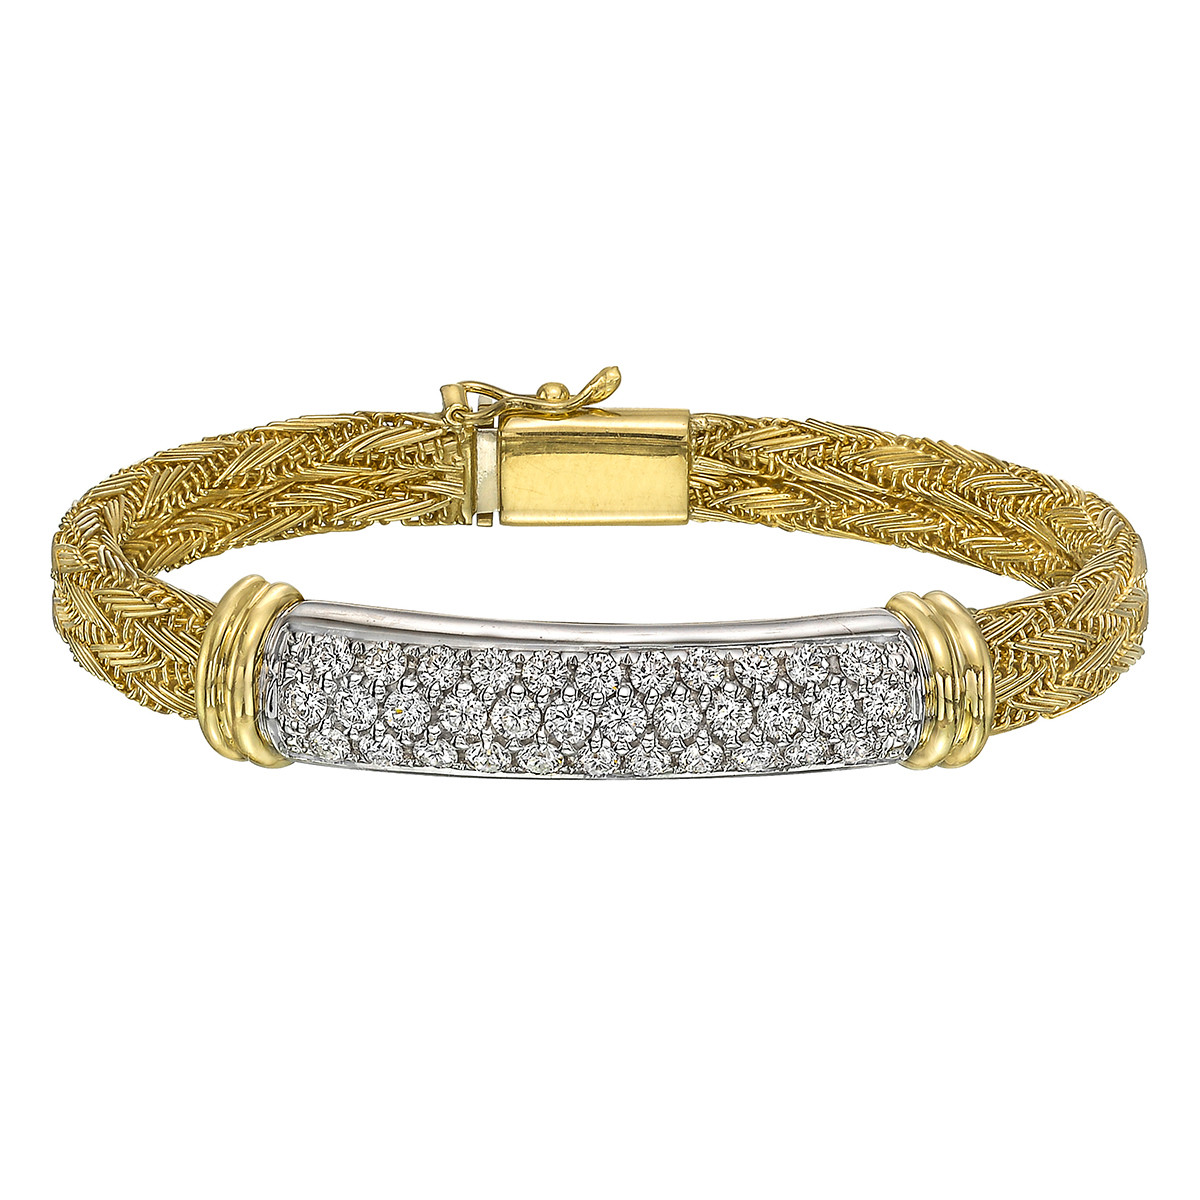 18k Gold Diamond Panel Bracelet